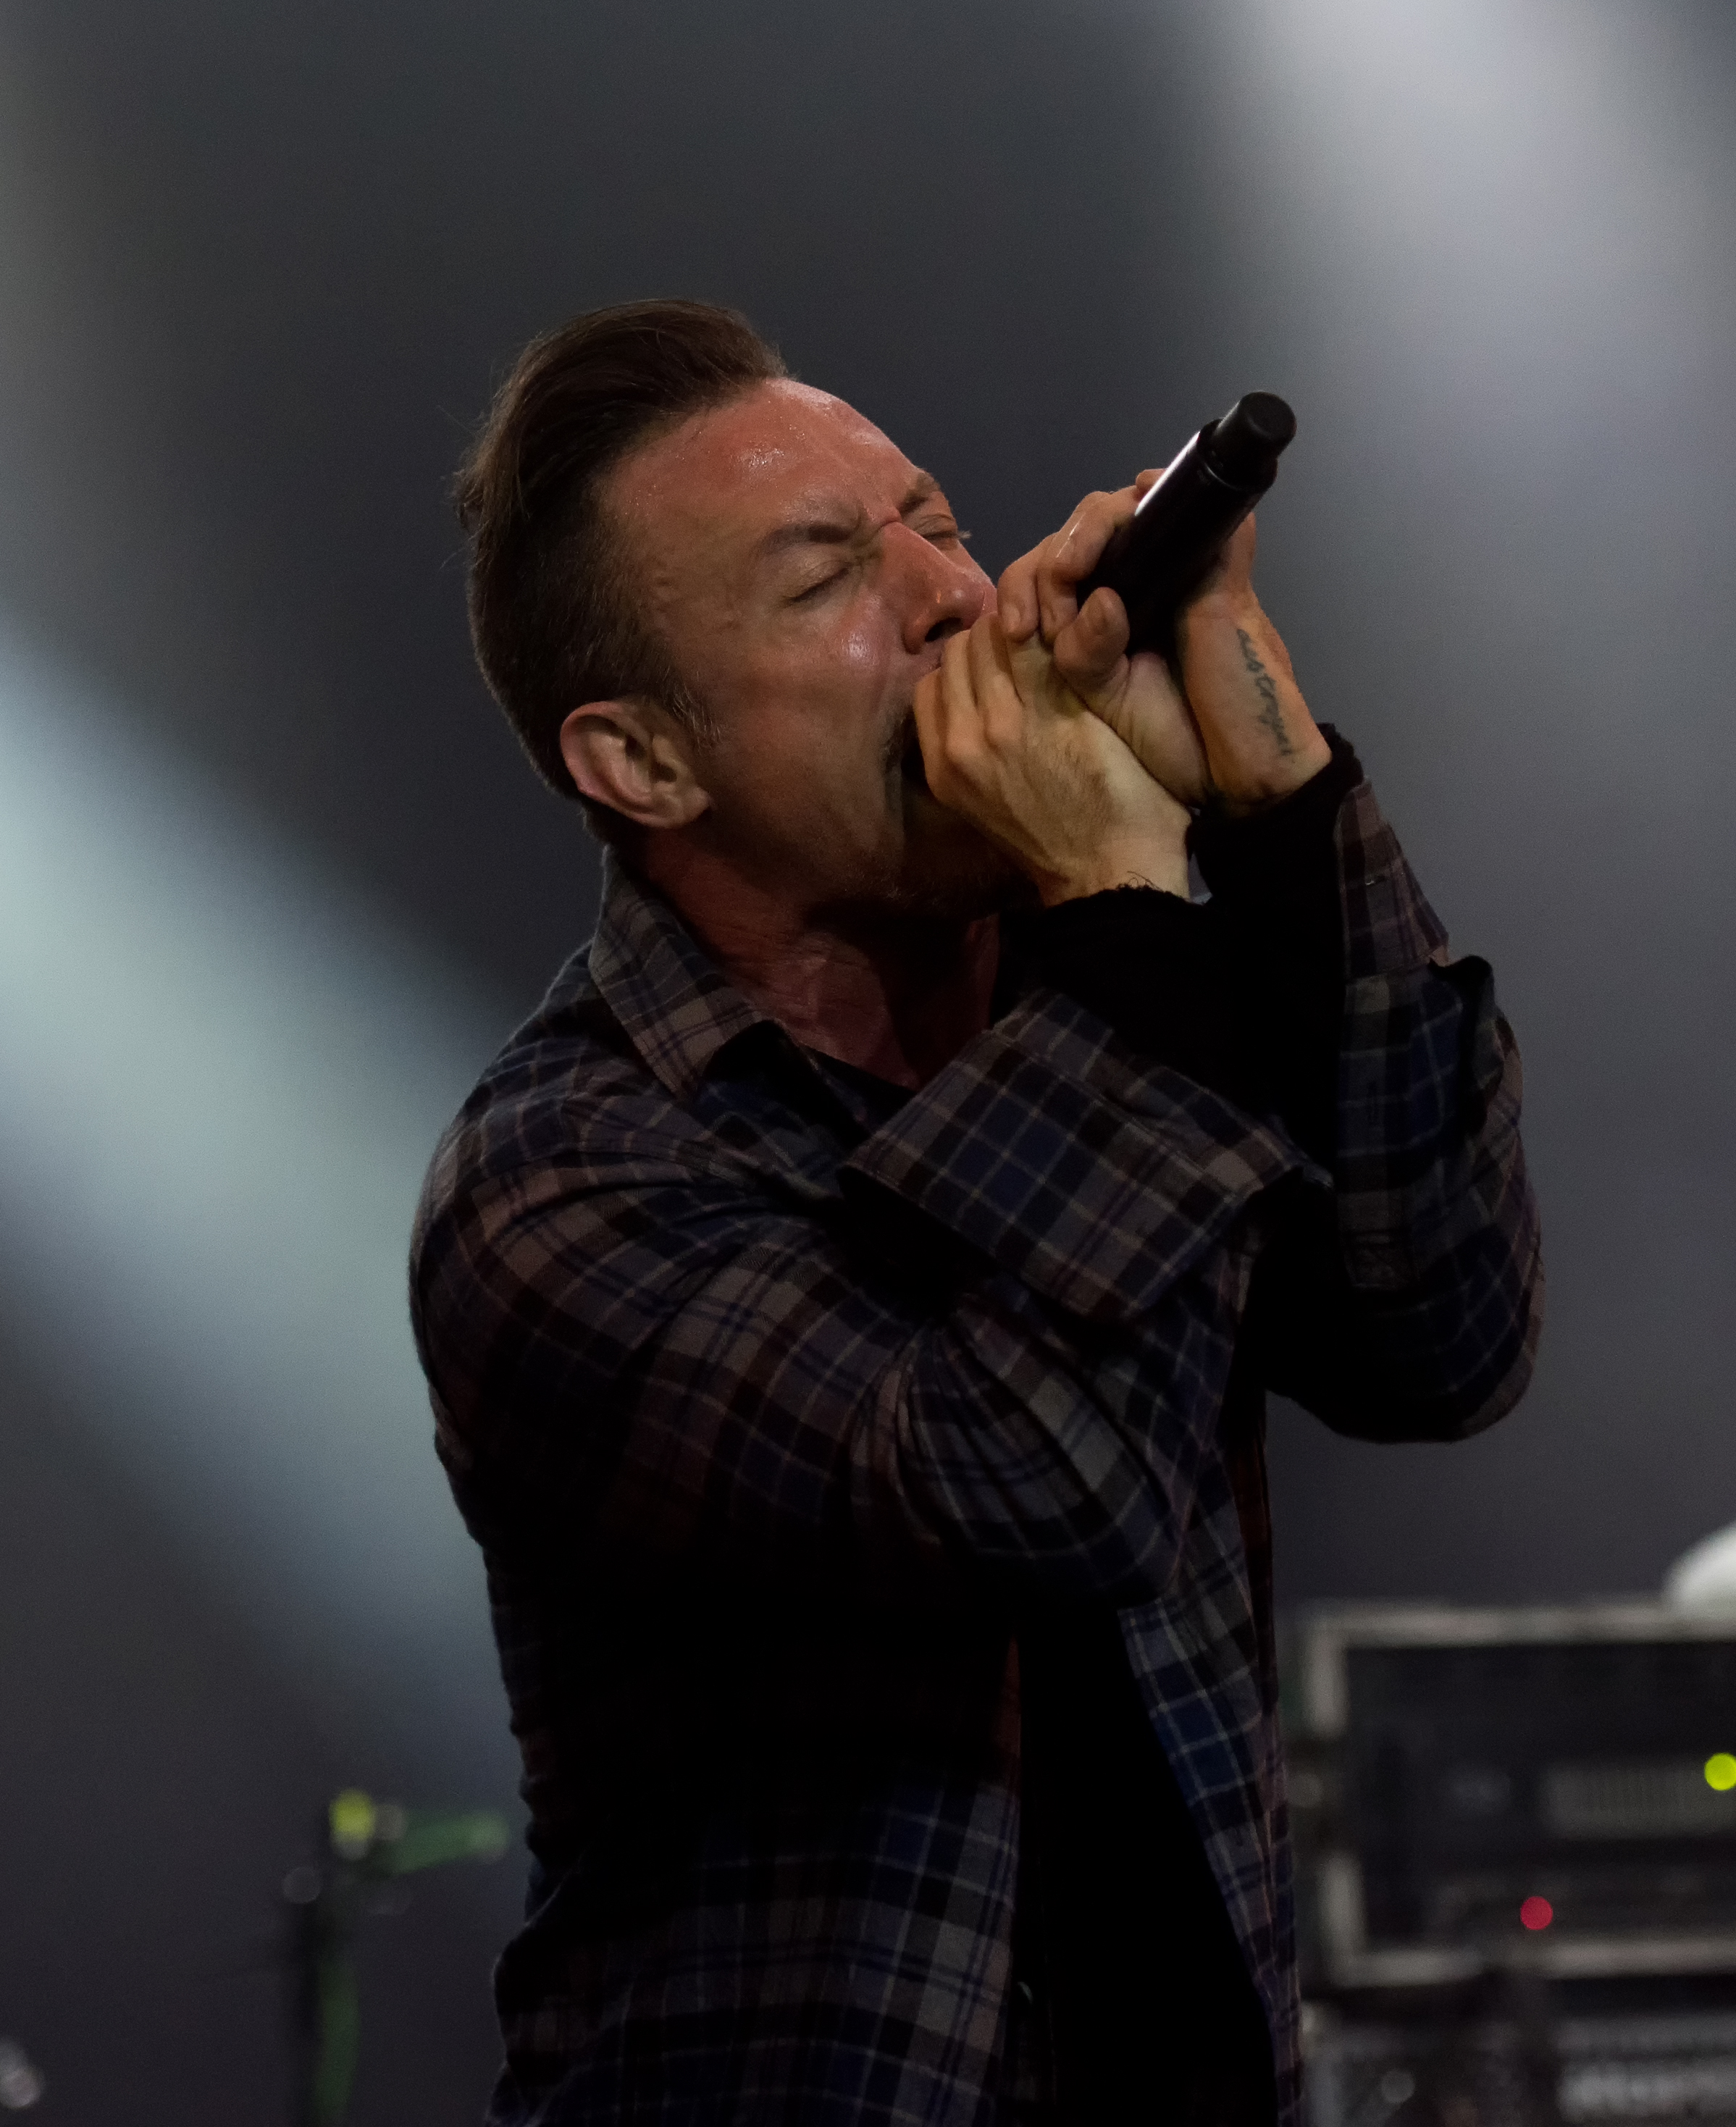 The 38-year old son of father (?) and mother(?) Greg Puciato in 2018 photo. Greg Puciato earned a  million dollar salary - leaving the net worth at 2 million in 2018